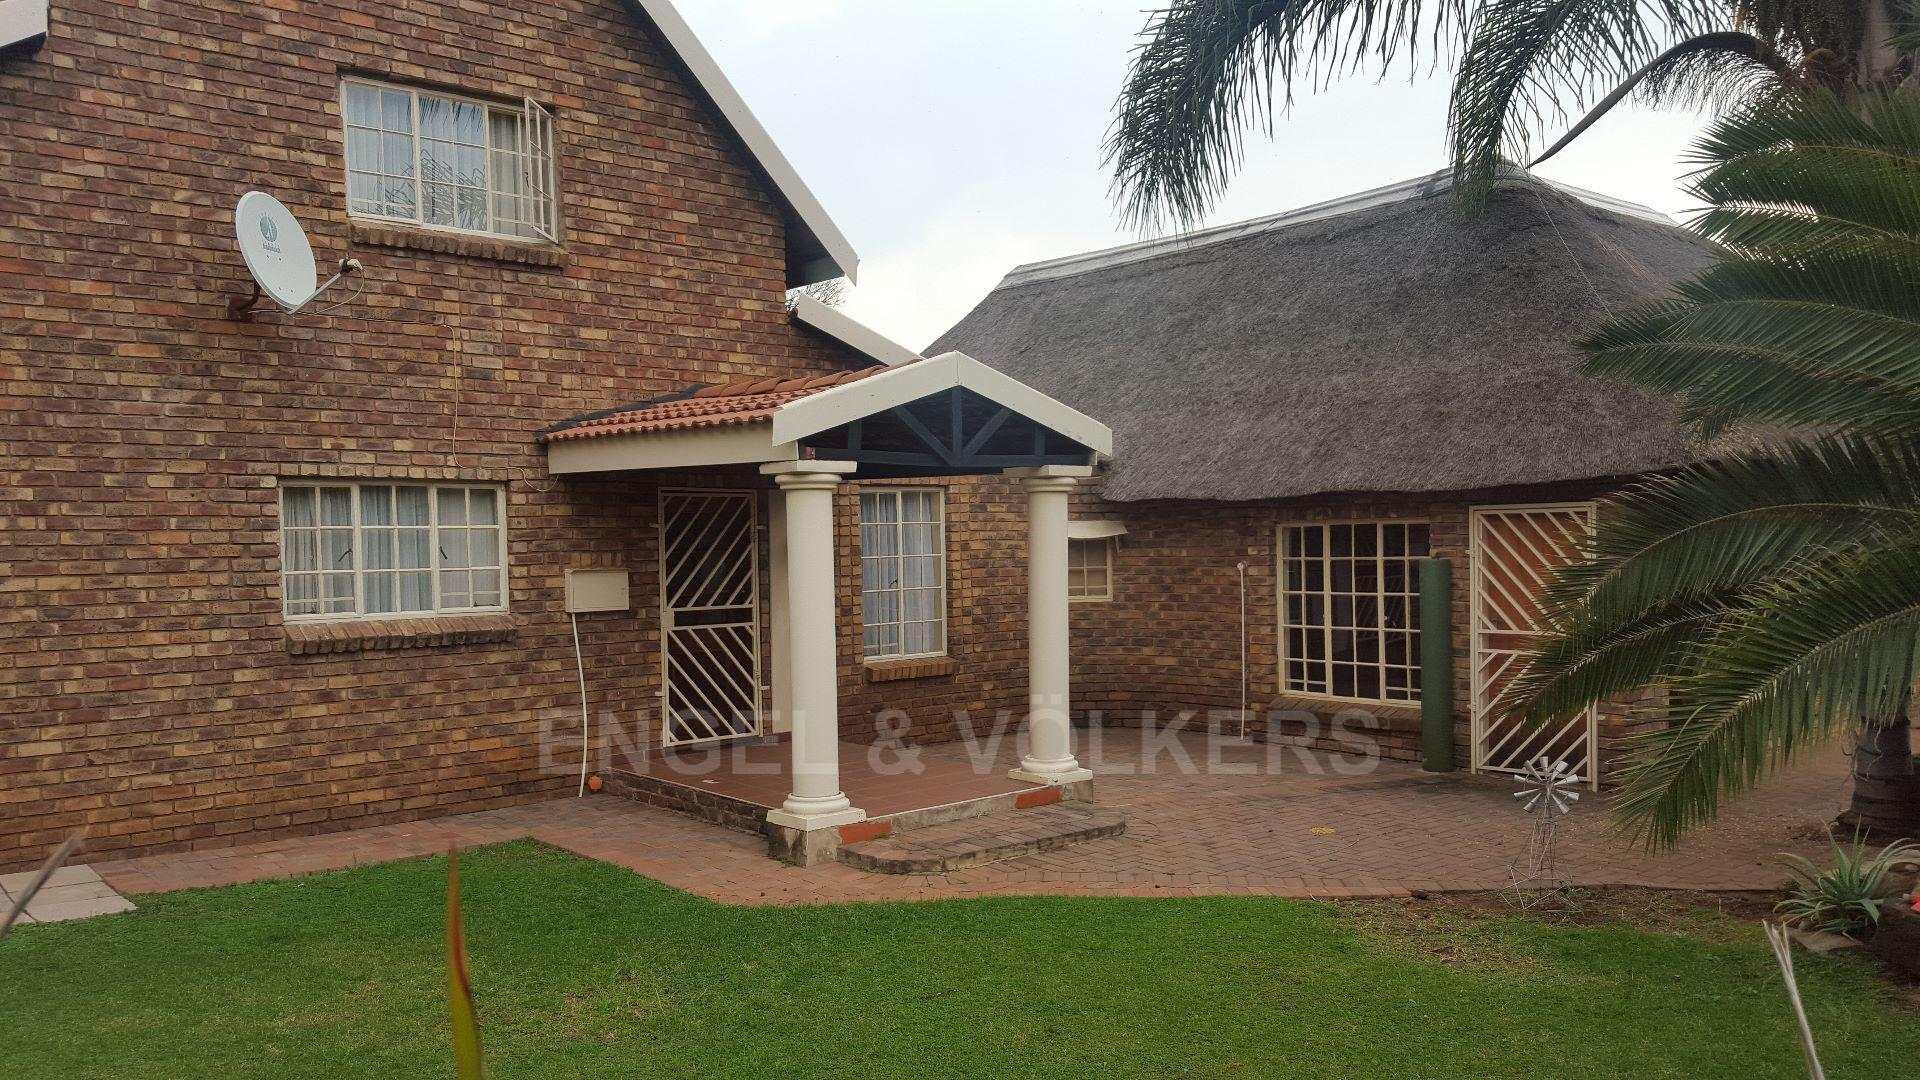 Centurion, Rooihuiskraal North Property  | Houses For Sale Rooihuiskraal North, ROOIHUISKRAAL NORTH, House 4 bedrooms property for sale Price:1,600,000